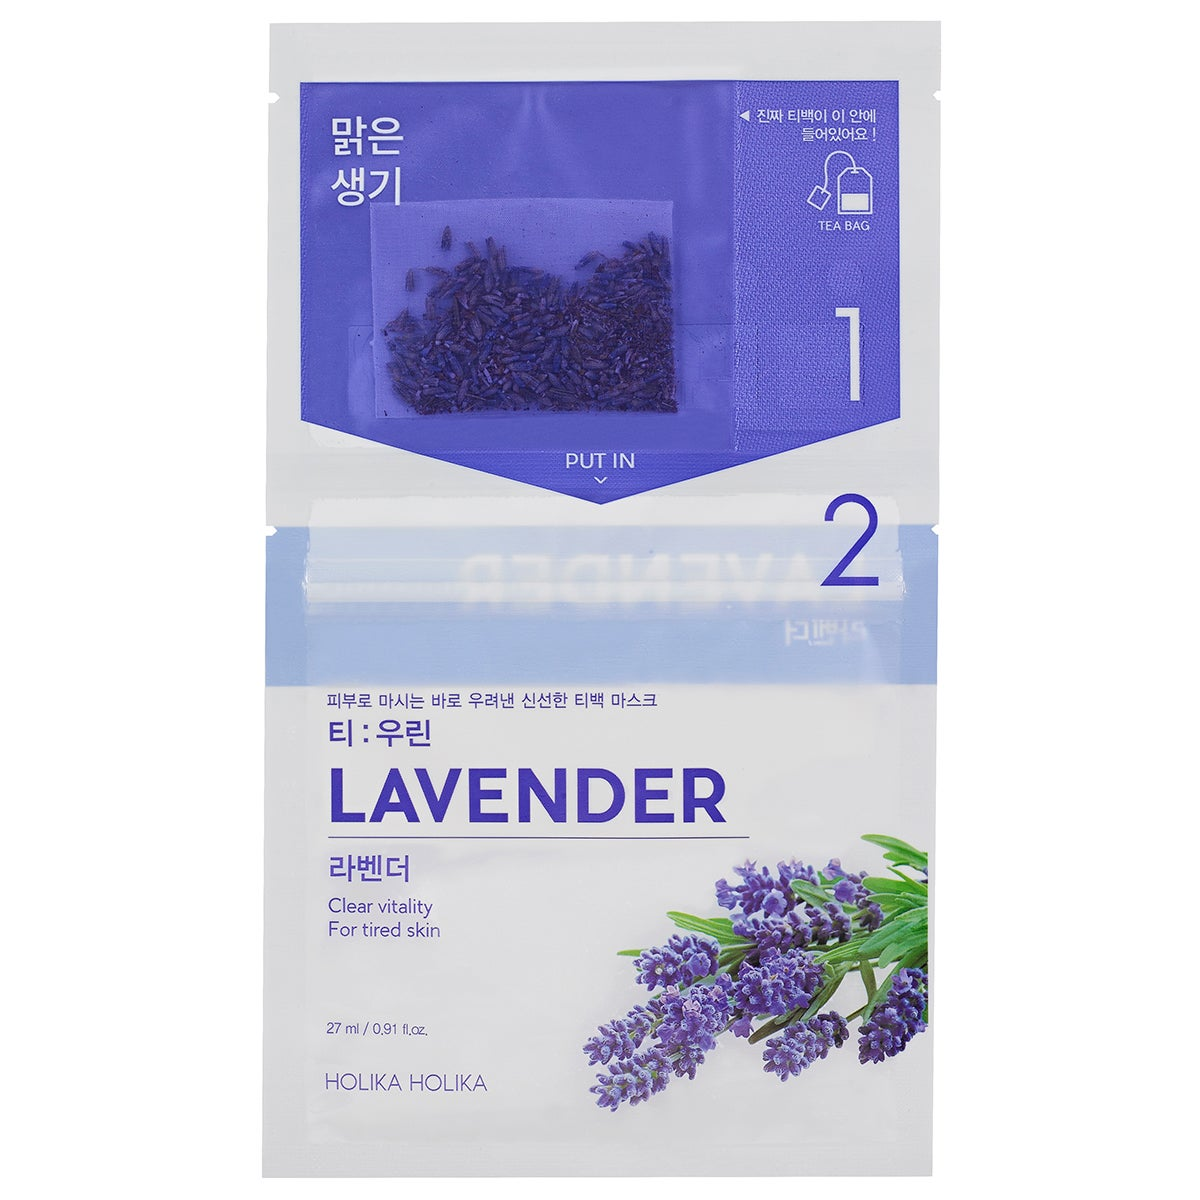 Holika Holika Instantly Brewing Tea Bag Mask - Lavender